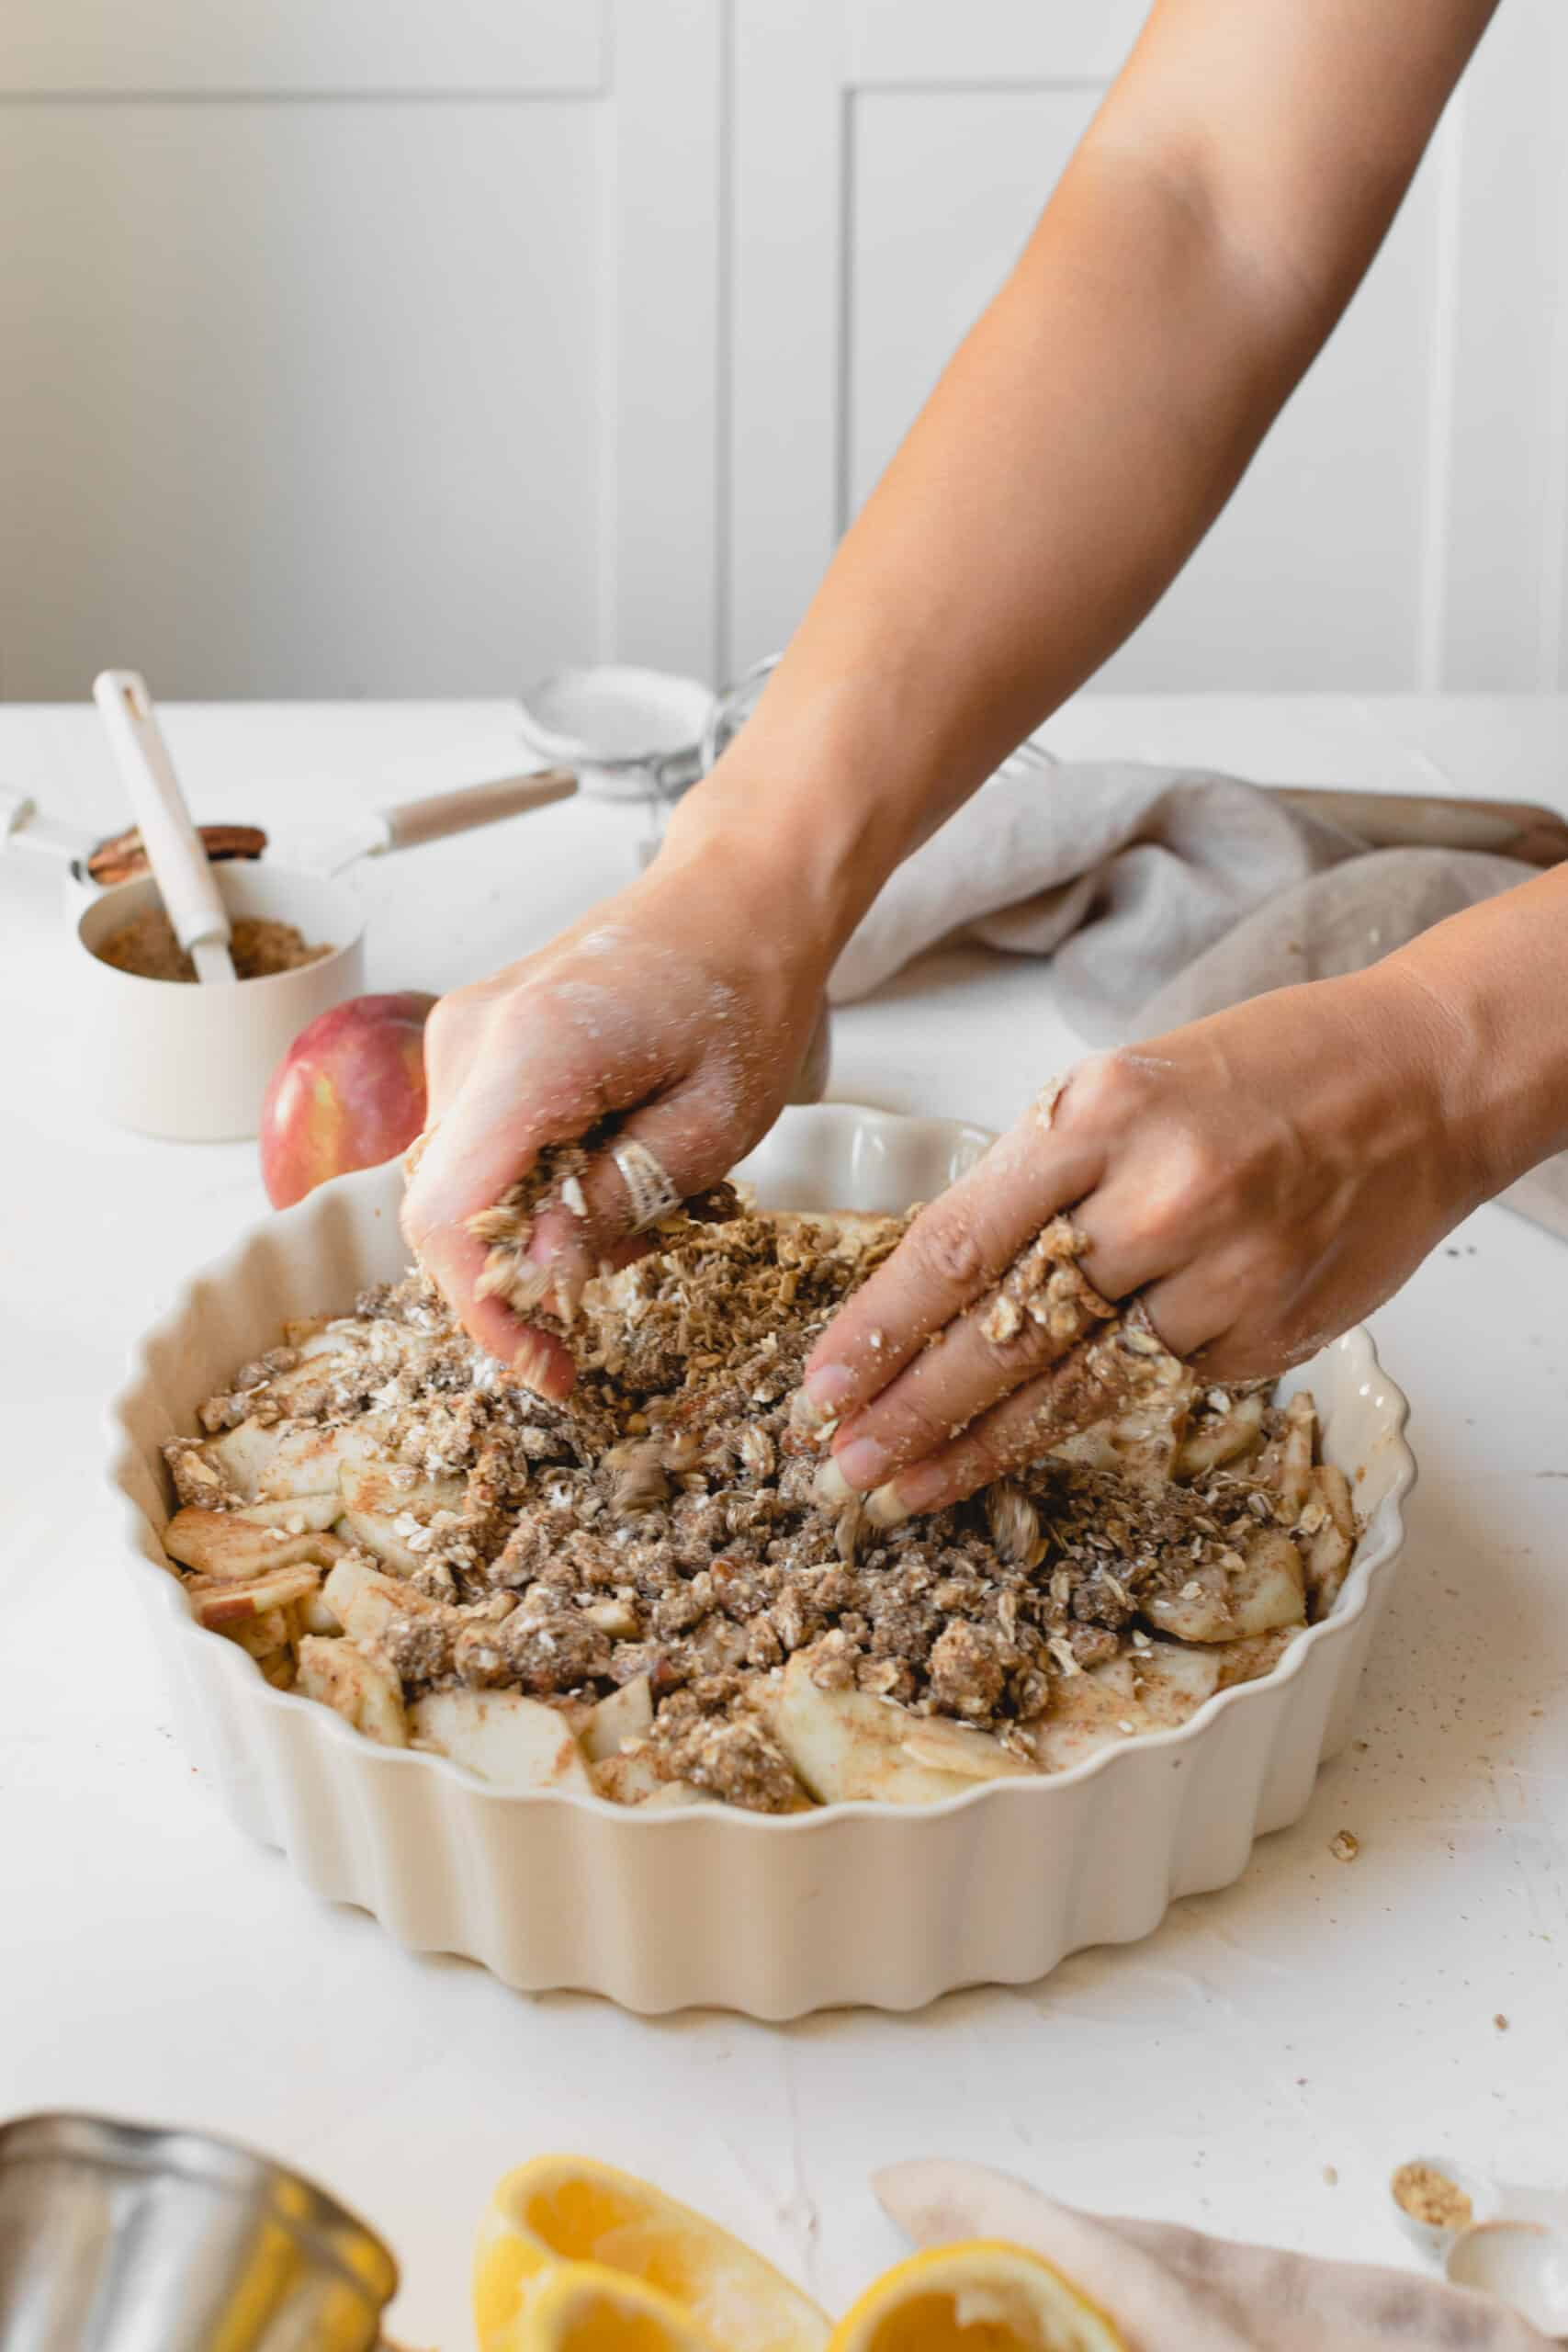 Person sprinkling the crumble on top of the apple in a serving dish.